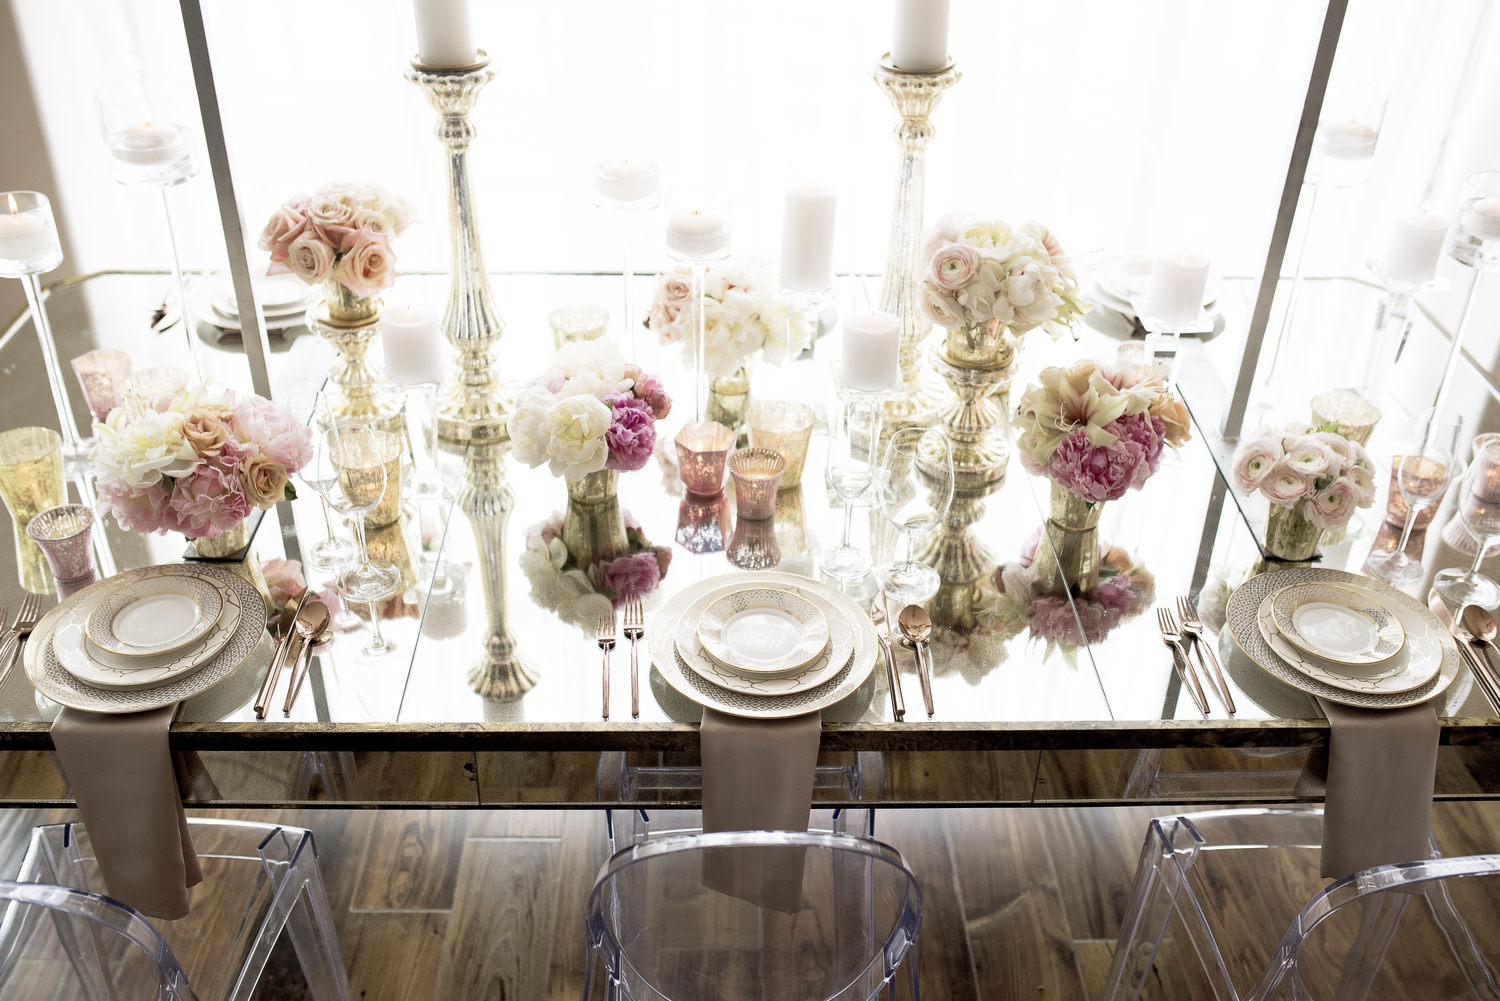 THE SCENE  Styling and Design by:  FUSE Weddings & Events  Photography by:  Elisha Braithwaite  Rentals provided by:  Decoration Inc.  China, Glassware, and Flatware by:  Diamond Rental   Linens by:  Creative Coverings   Flowers by:  Decoration Inc.  Venue:  The Tasting Room